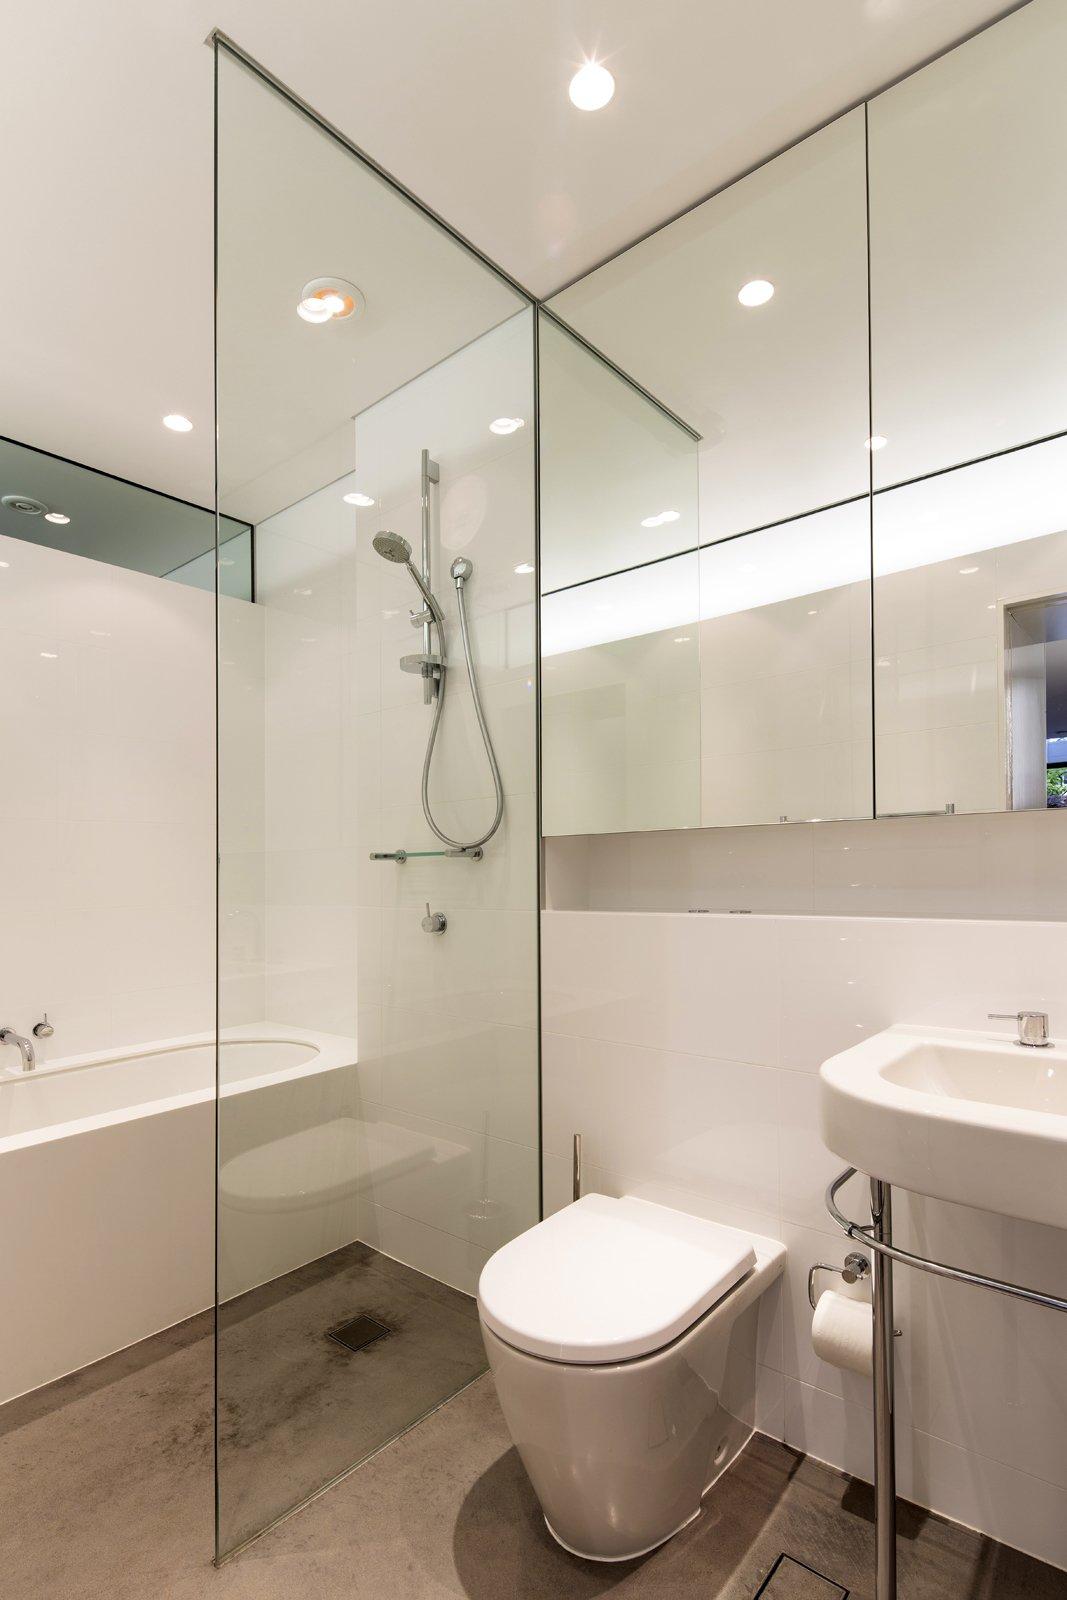 Situated behind the kitchen, the lower level bathroom is equally suited to cleaning up before a meal or taking a leisurely bath. Crisp white fixtures, including a Kaldewei Centro Duo bath, ensure that the bathroom feels as light and airy as the rest of the house.